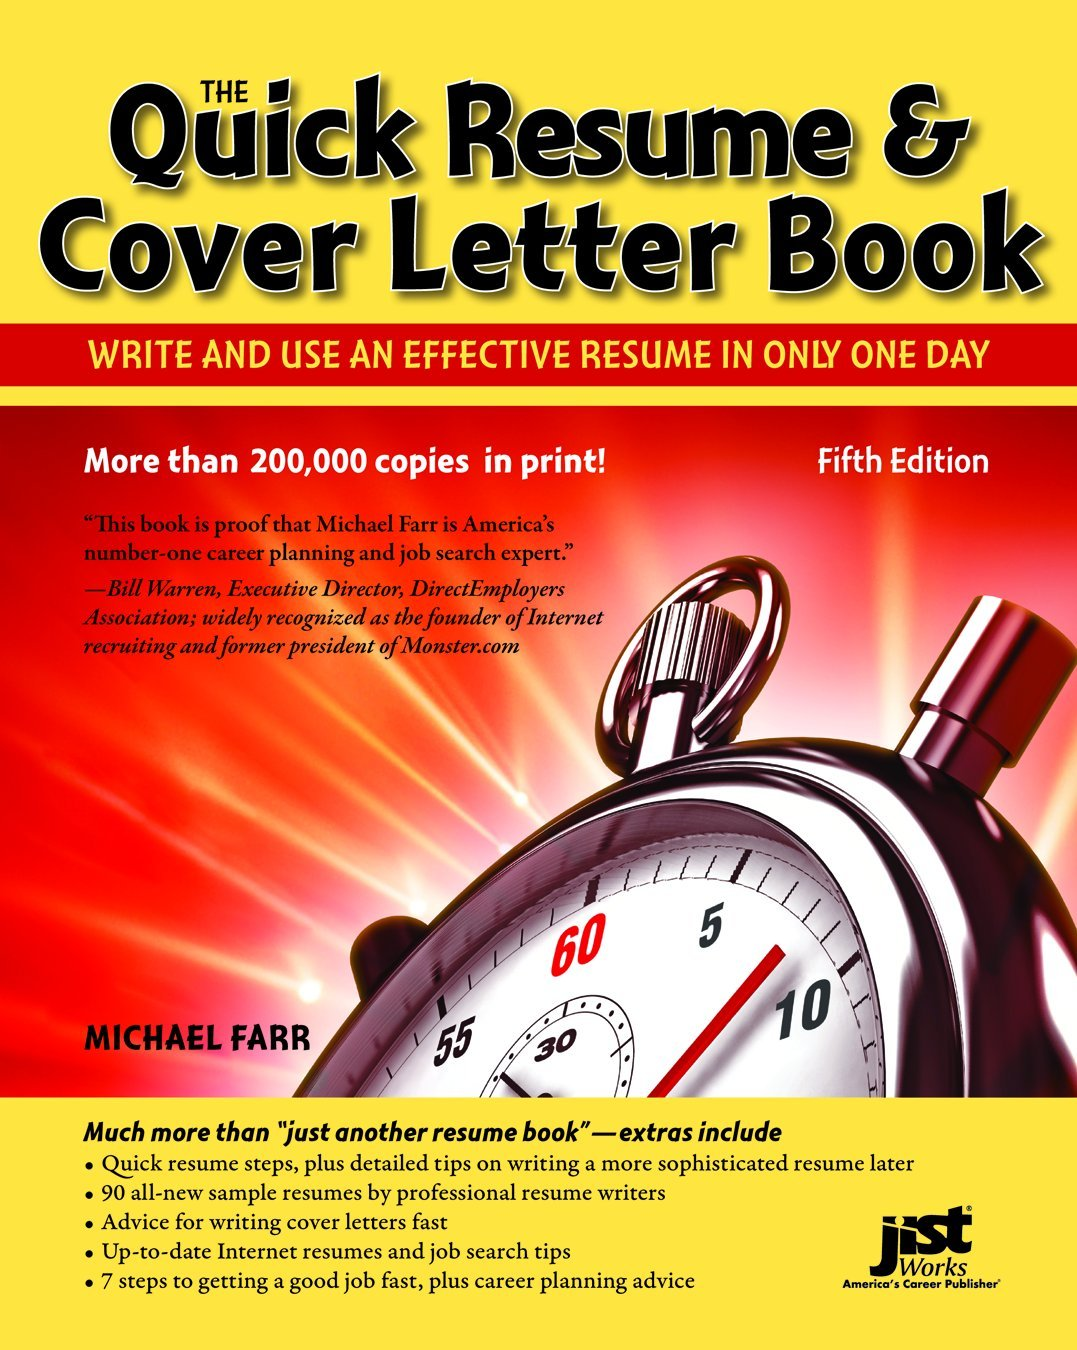 Quick resume cover letter book write and use an effective resume quick resume cover letter book write and use an effective resume in just one day quick resume and cover letter book michael farr jist editors spiritdancerdesigns Image collections